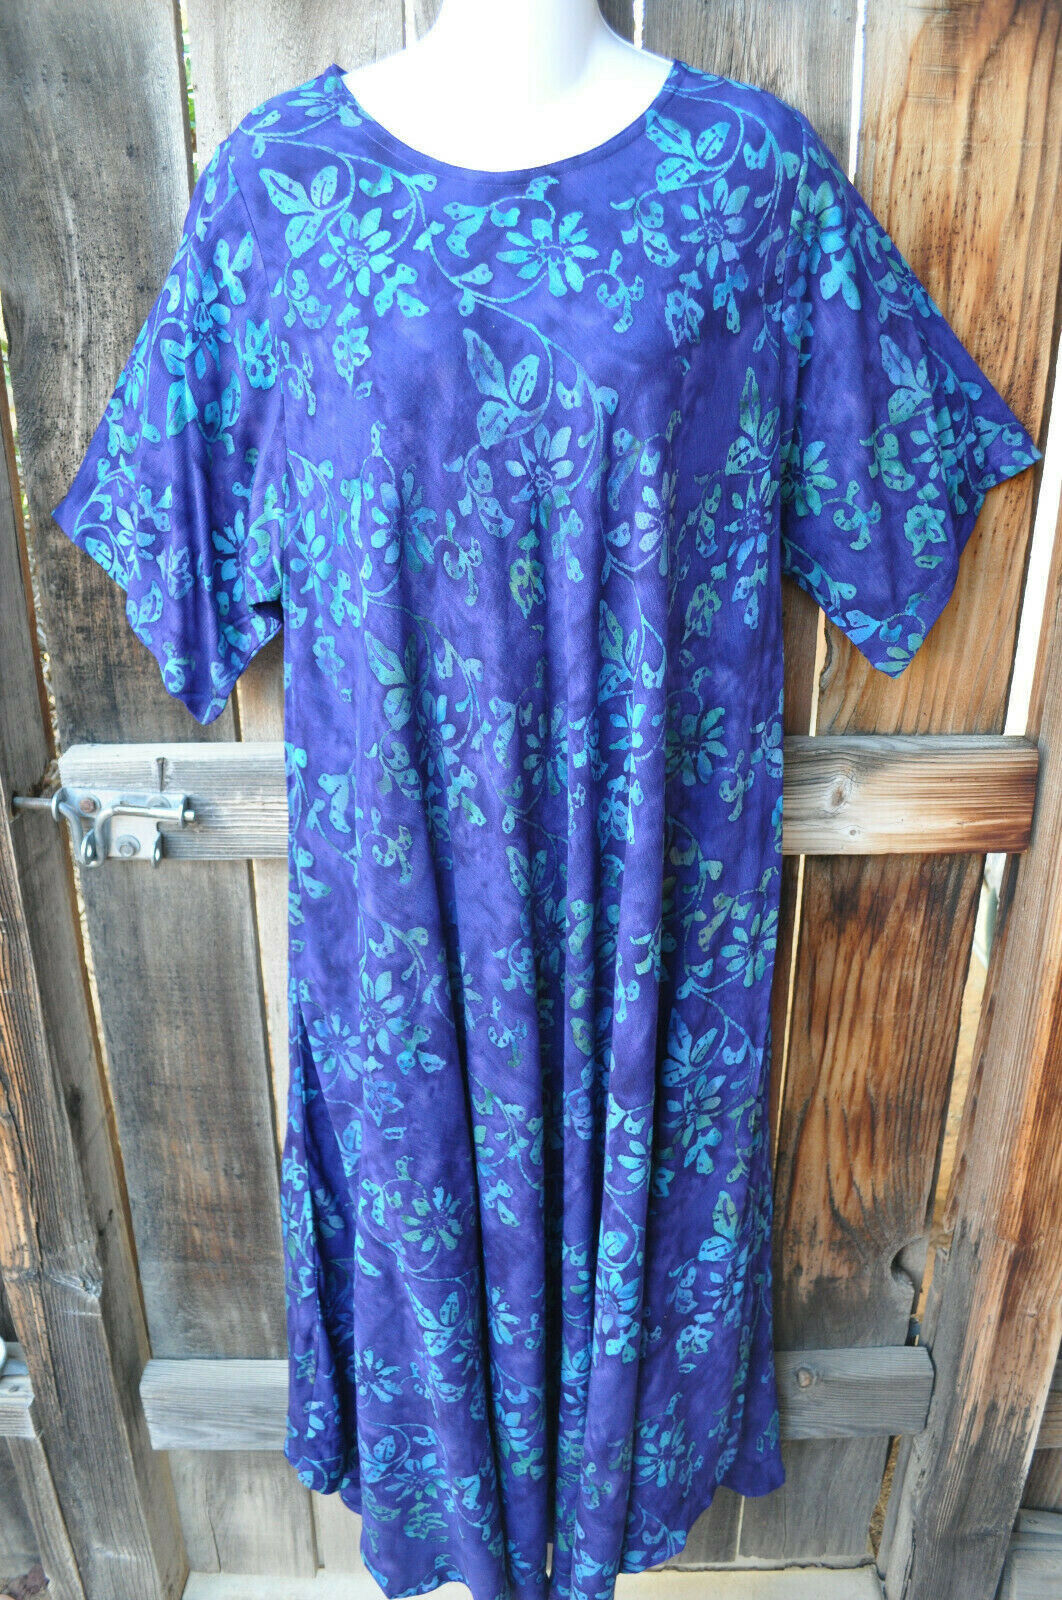 ART TO WEAR LAGENLOOK MADRAS TUNIC DRESS IN NEW Blau RIDGE BY MISSION CANYON,OS